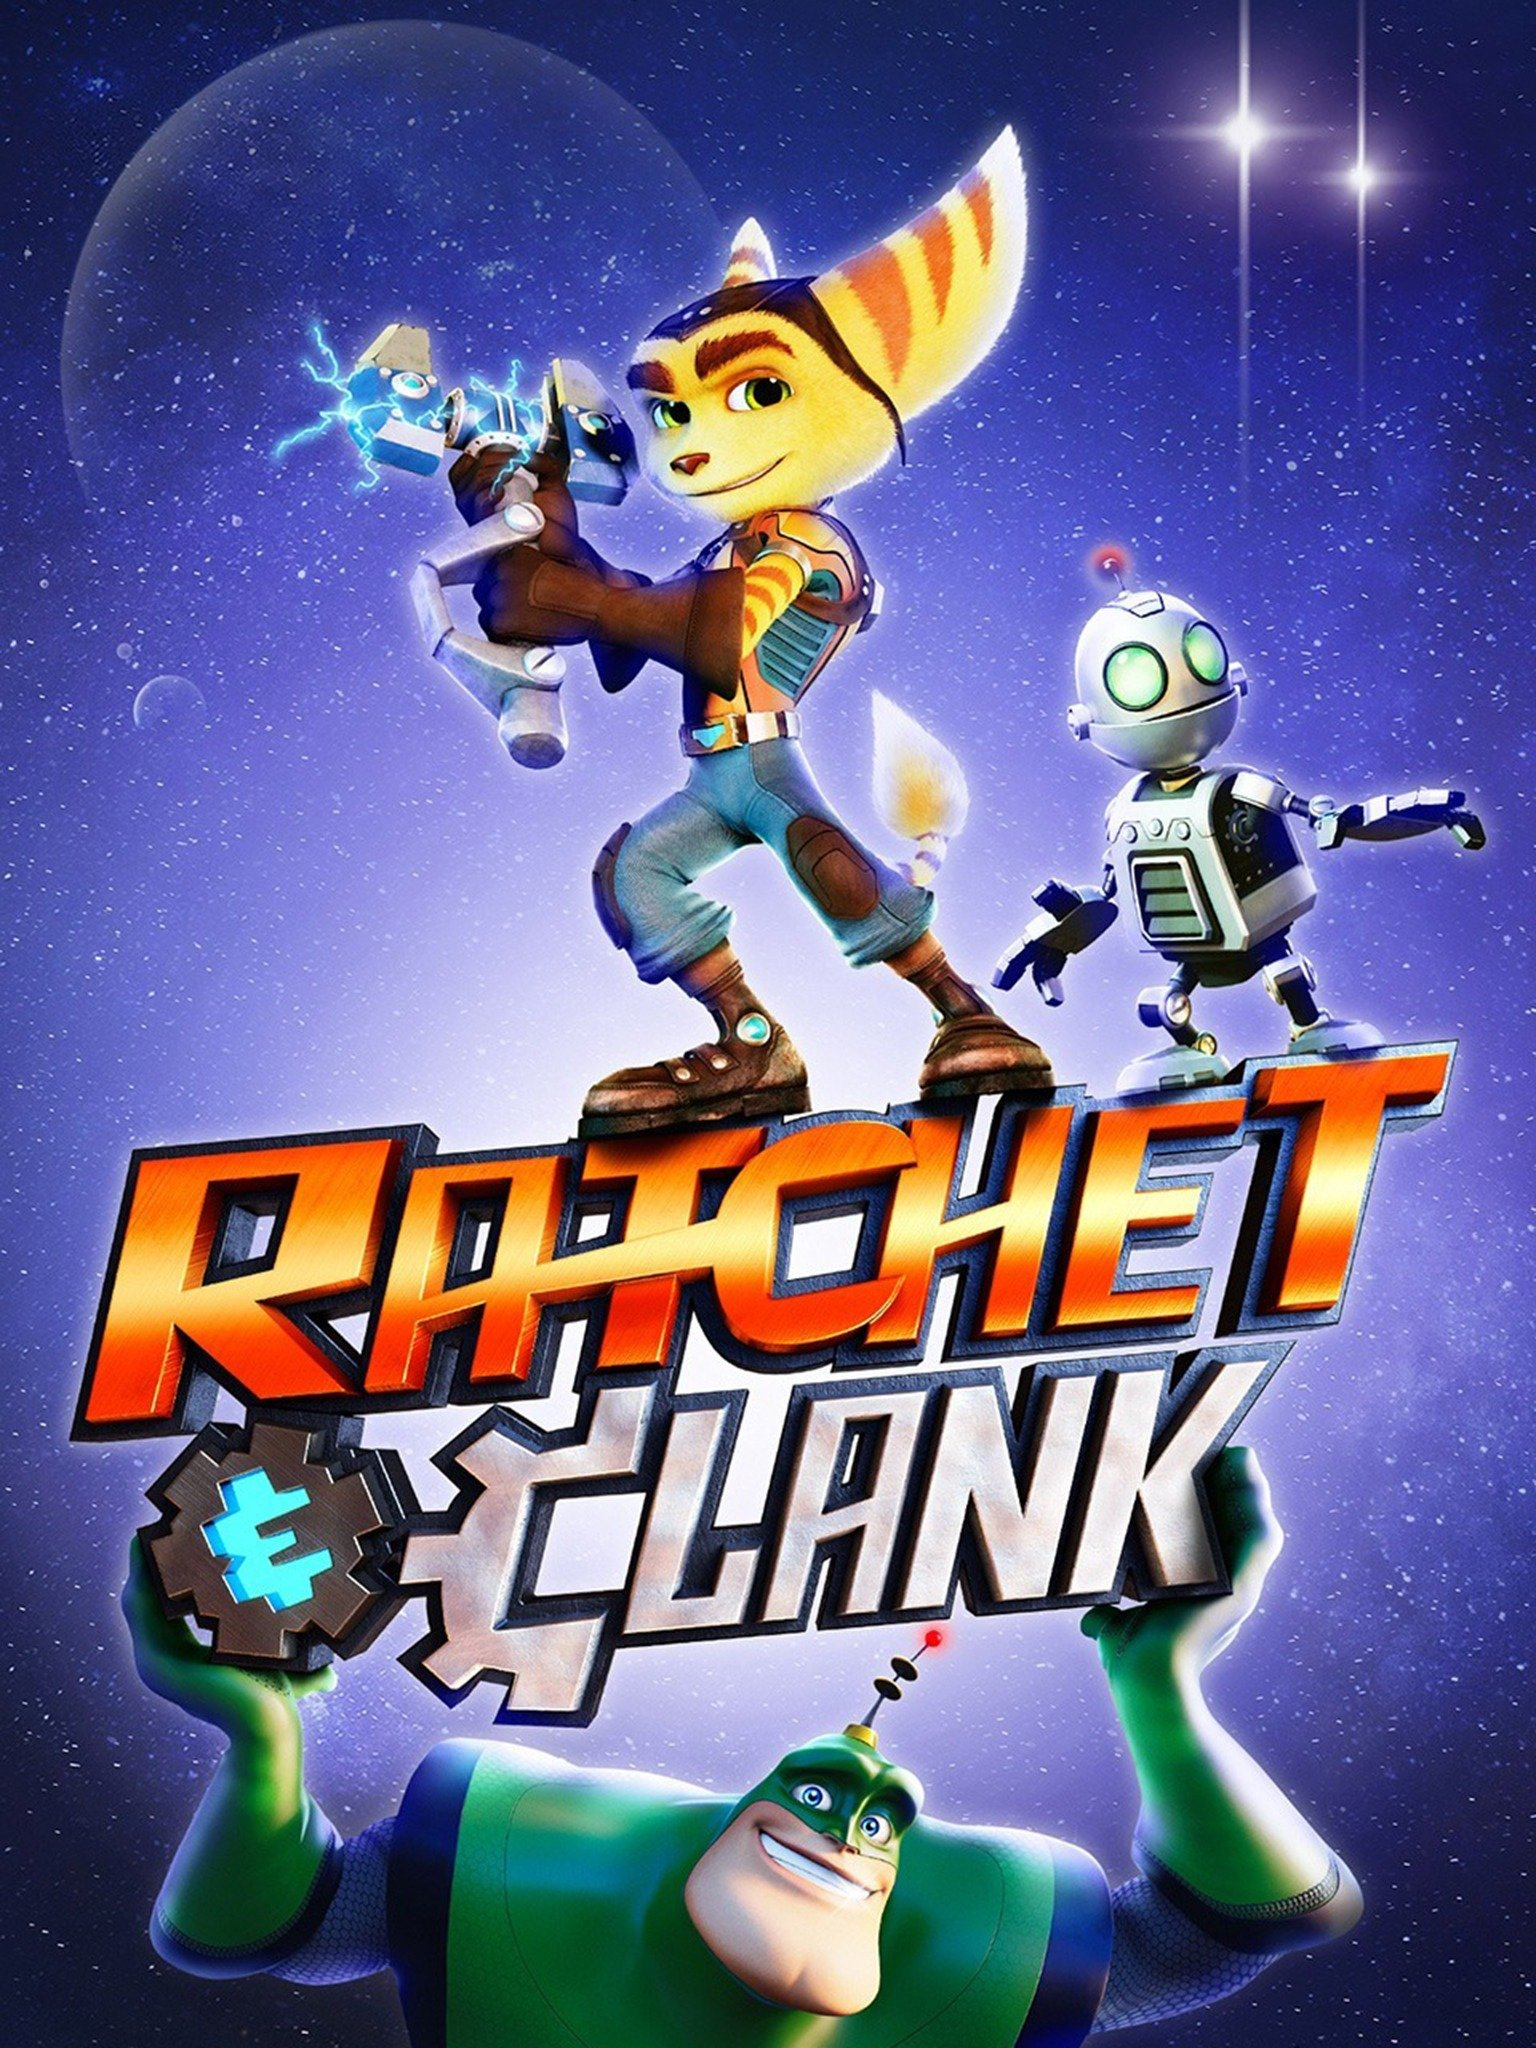 Image result for ratchet and clank poster""